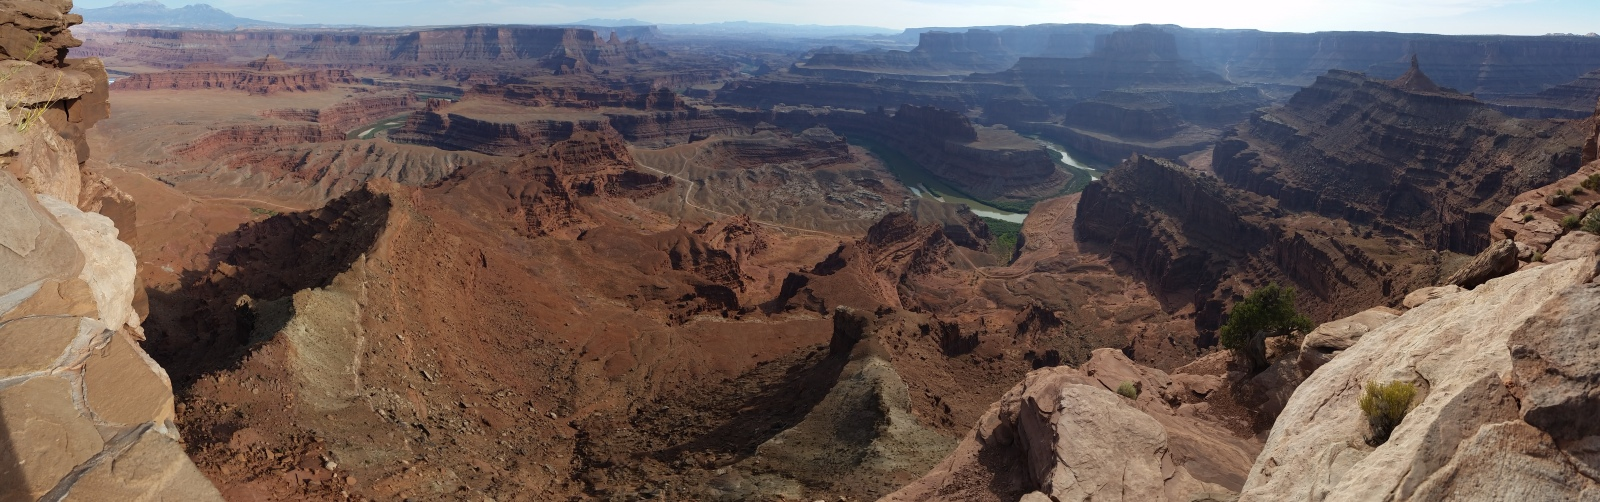 Panorama Dead Horse Point